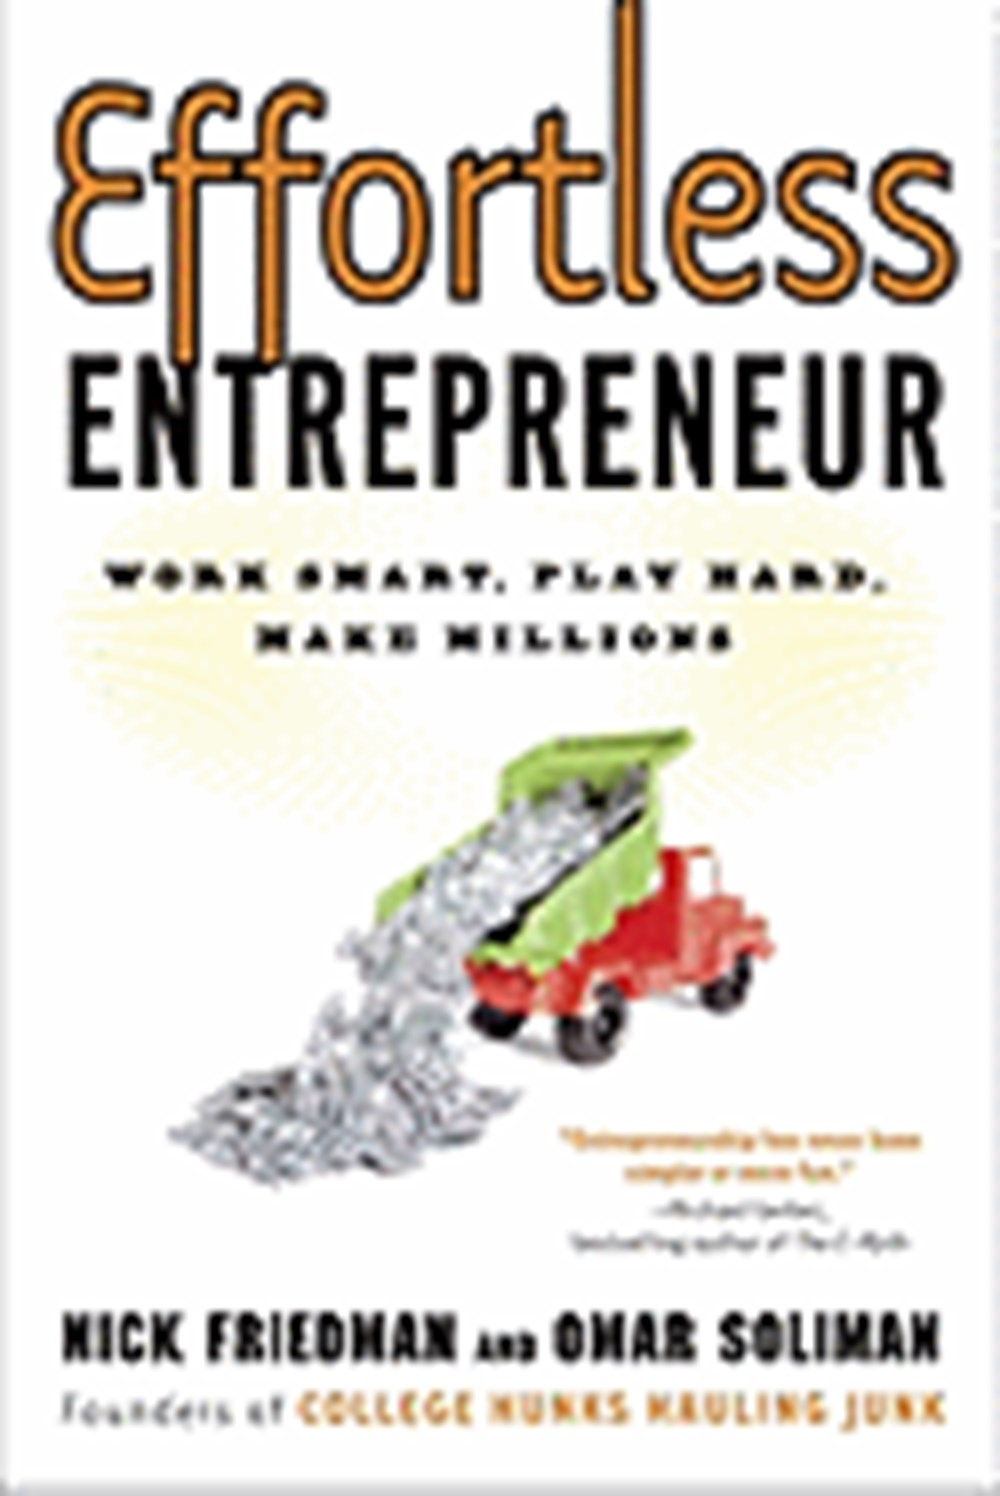 Effortless Entrepreneur Work Smart, Play Hard, Make Millions